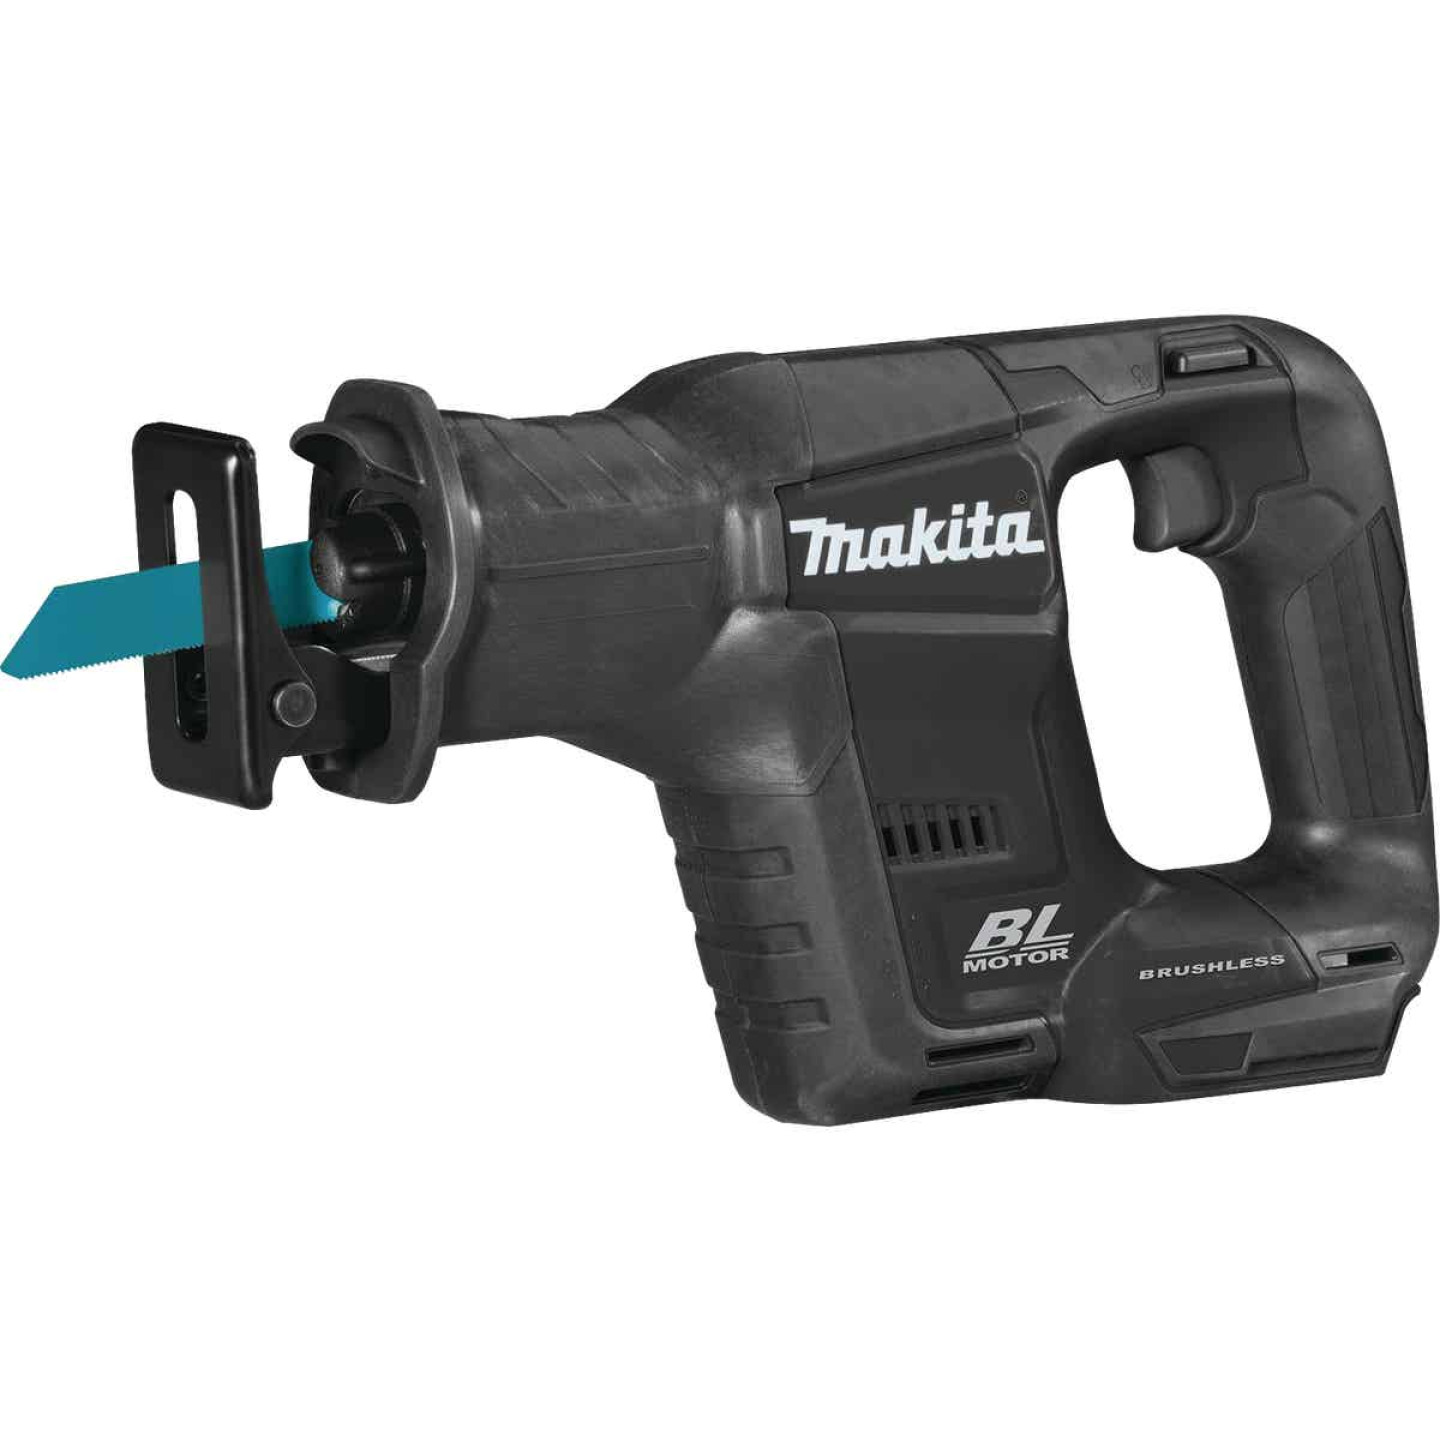 Makita 18 Volt LXT Lithium-Ion Brushless Sub-Compact Cordless Reciprocating Saw (Bare Tool) Image 1